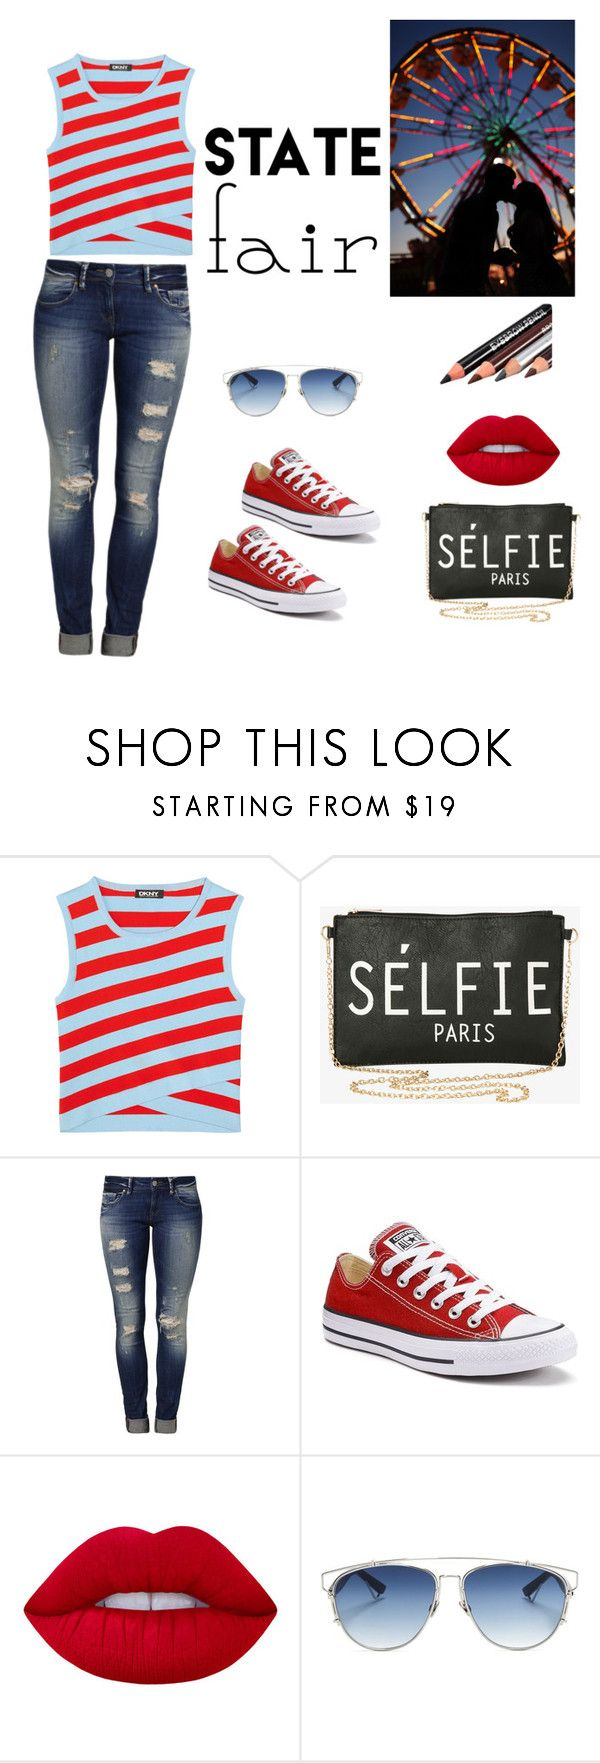 """""""My First Polyvore Outfit"""" by just-hanging ❤ liked on Polyvore featuring DKNY, Torrid, Mavi, Converse, Lime Crime and Christian Dior"""